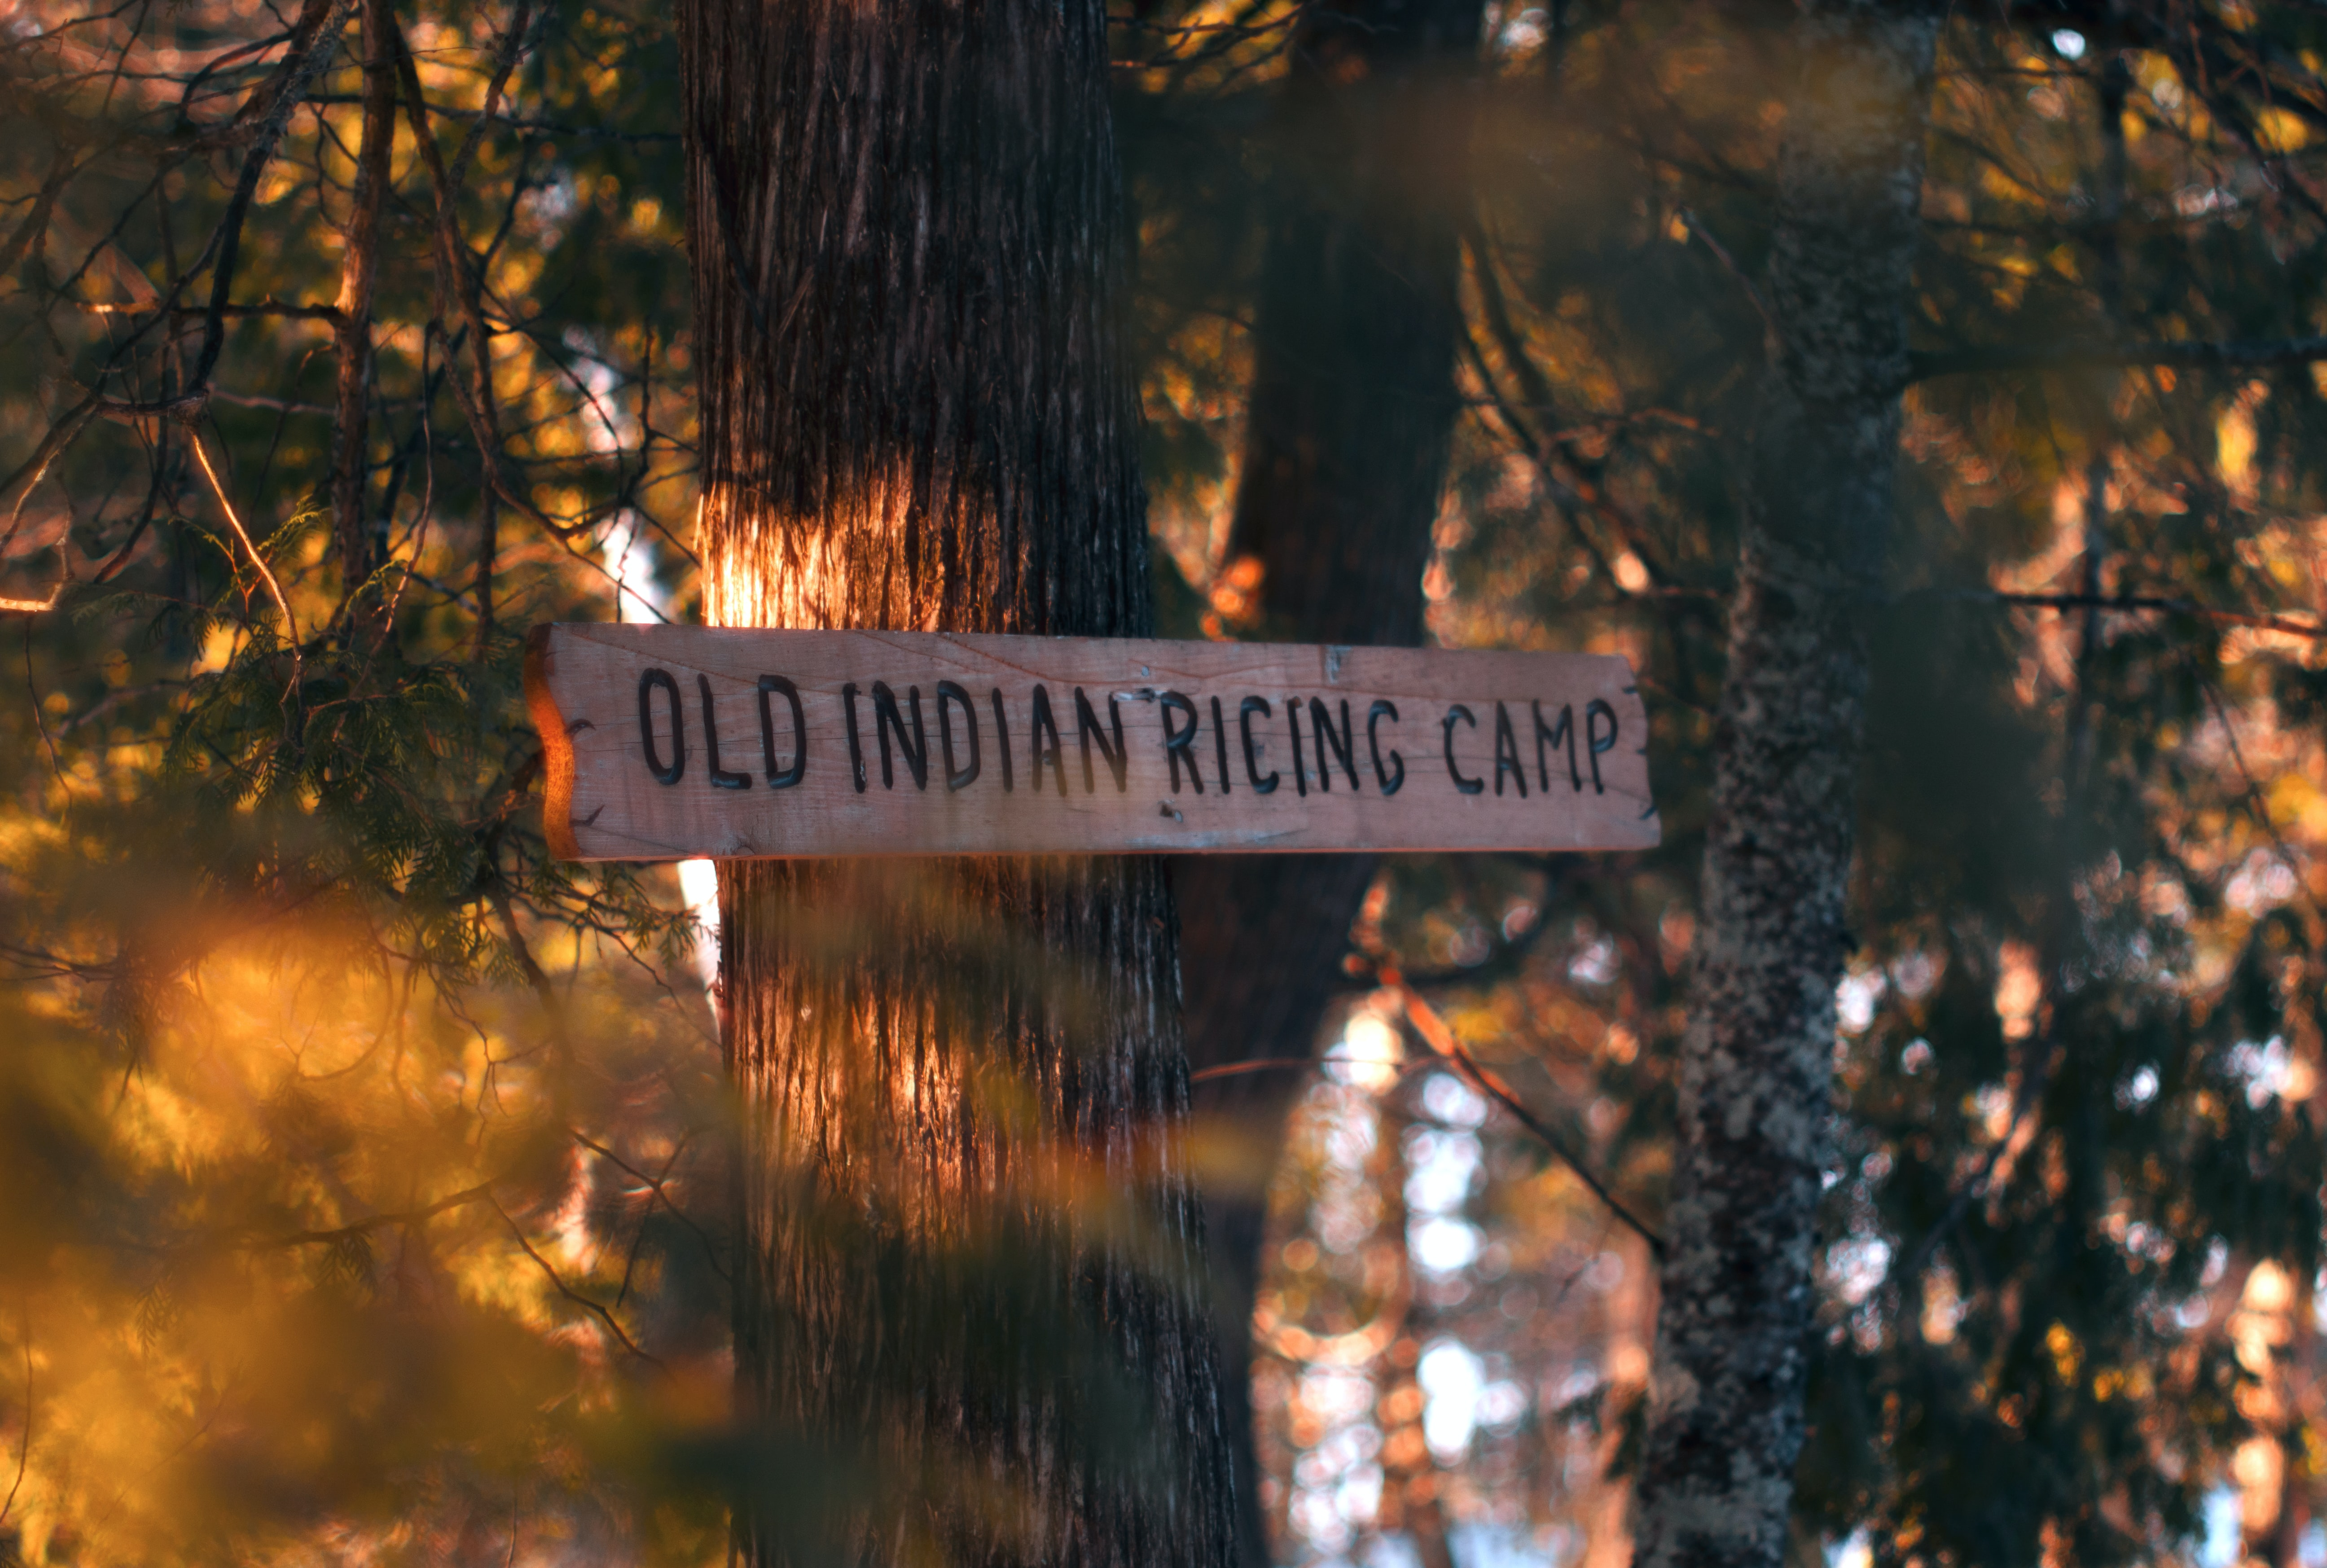 Old Indian Ricing Camp signage on gray tree trunk